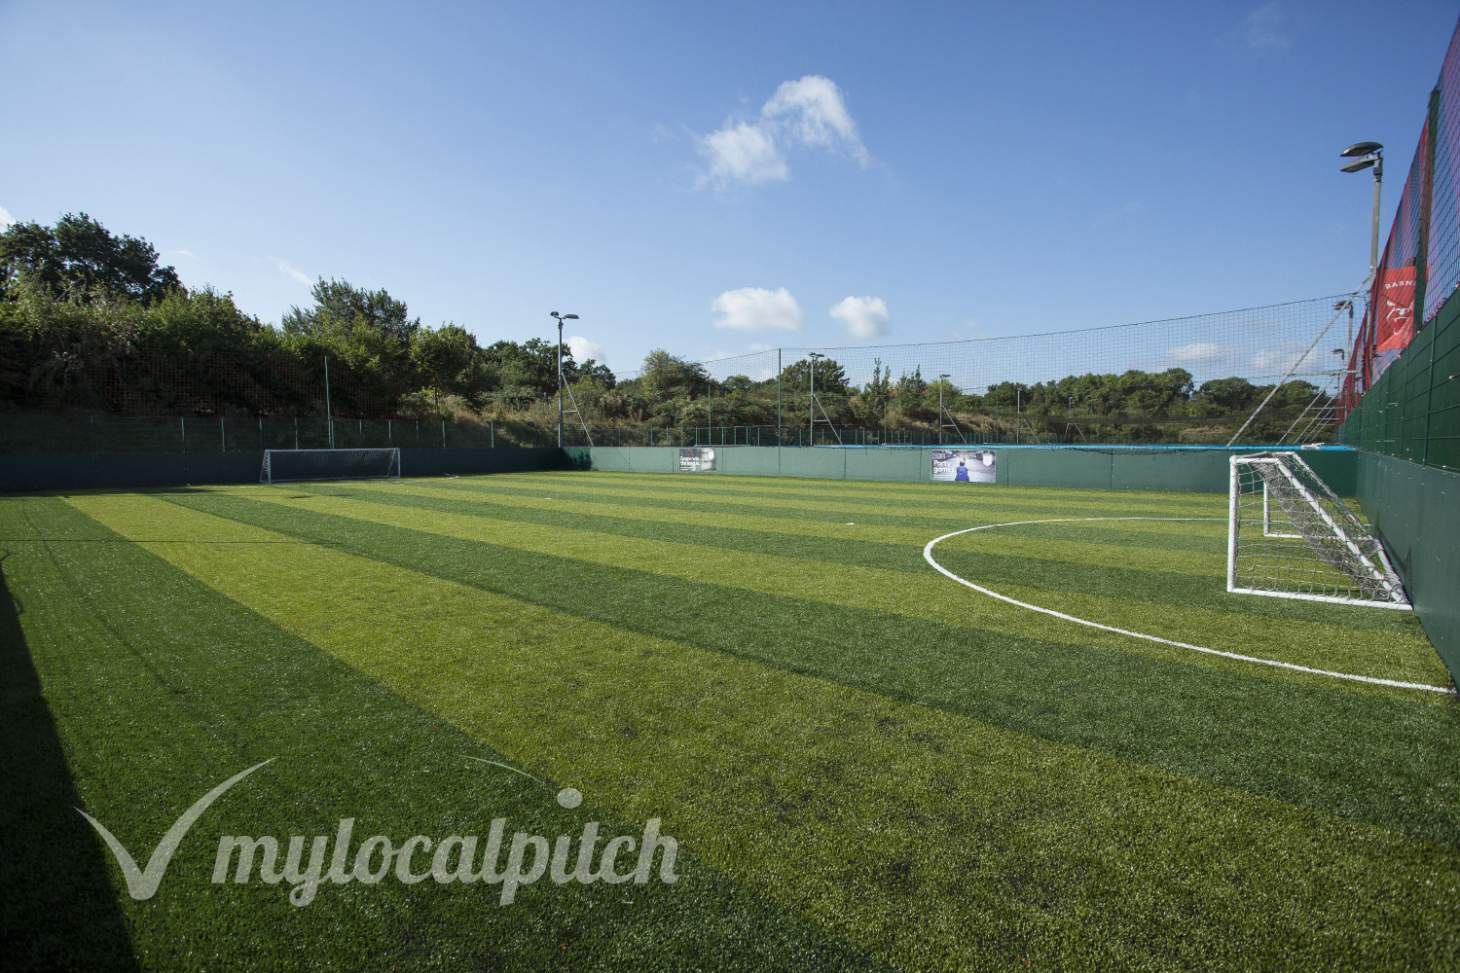 Powerleague Wigan 5 a side | 3G Astroturf football pitch